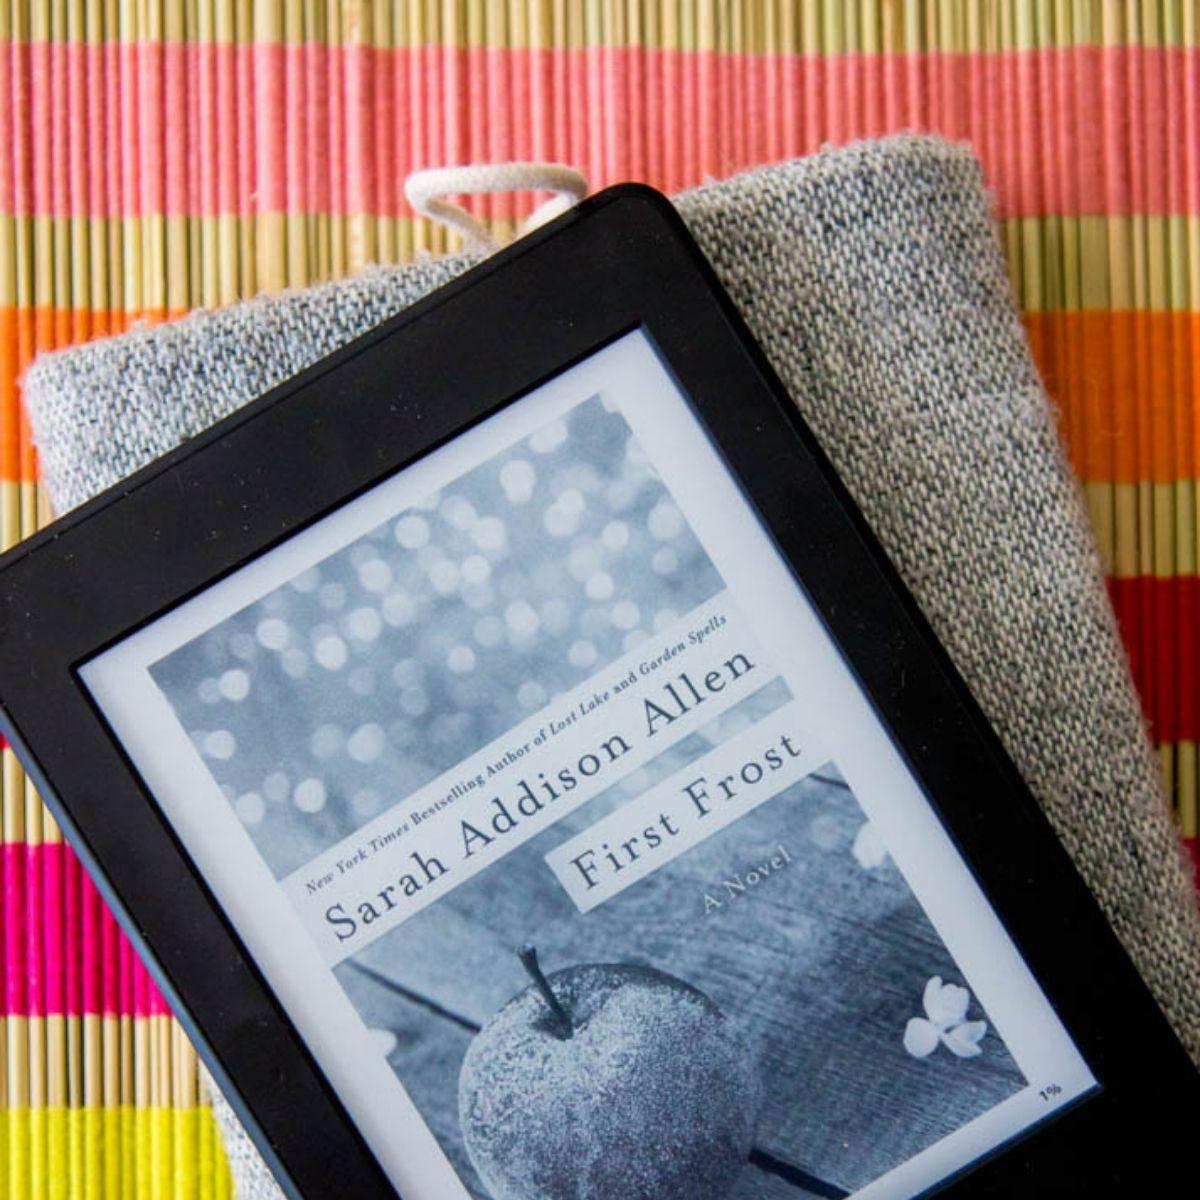 A Kindle has a new Kindle book for mom to read on her special day.